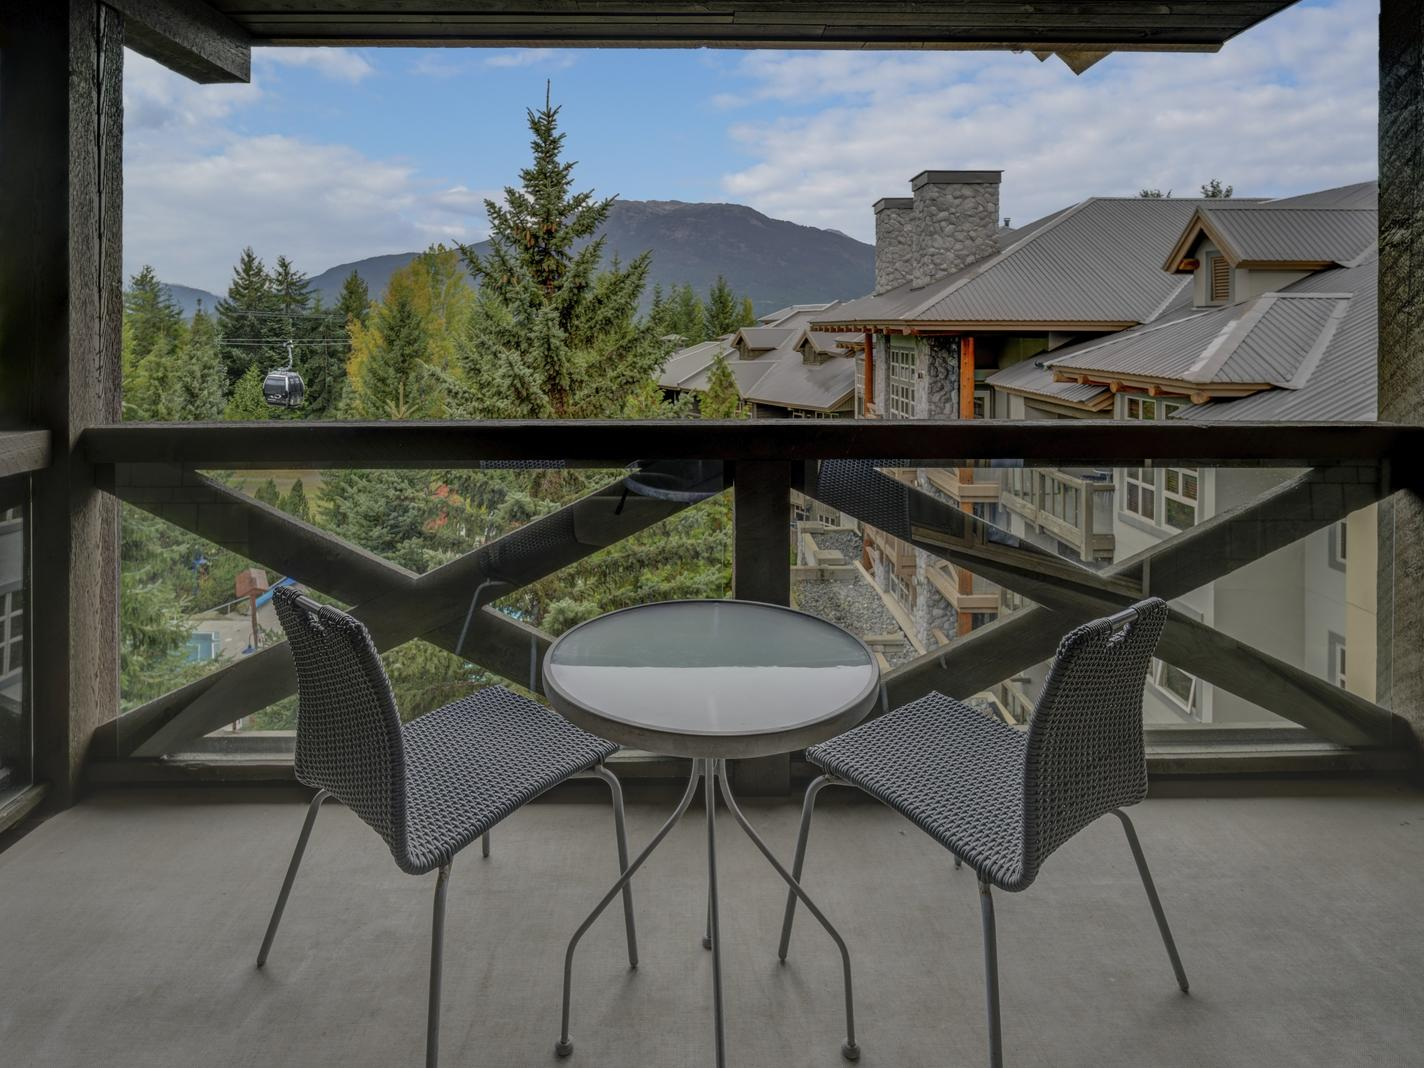 balcony chairs overlooking resort and mountains